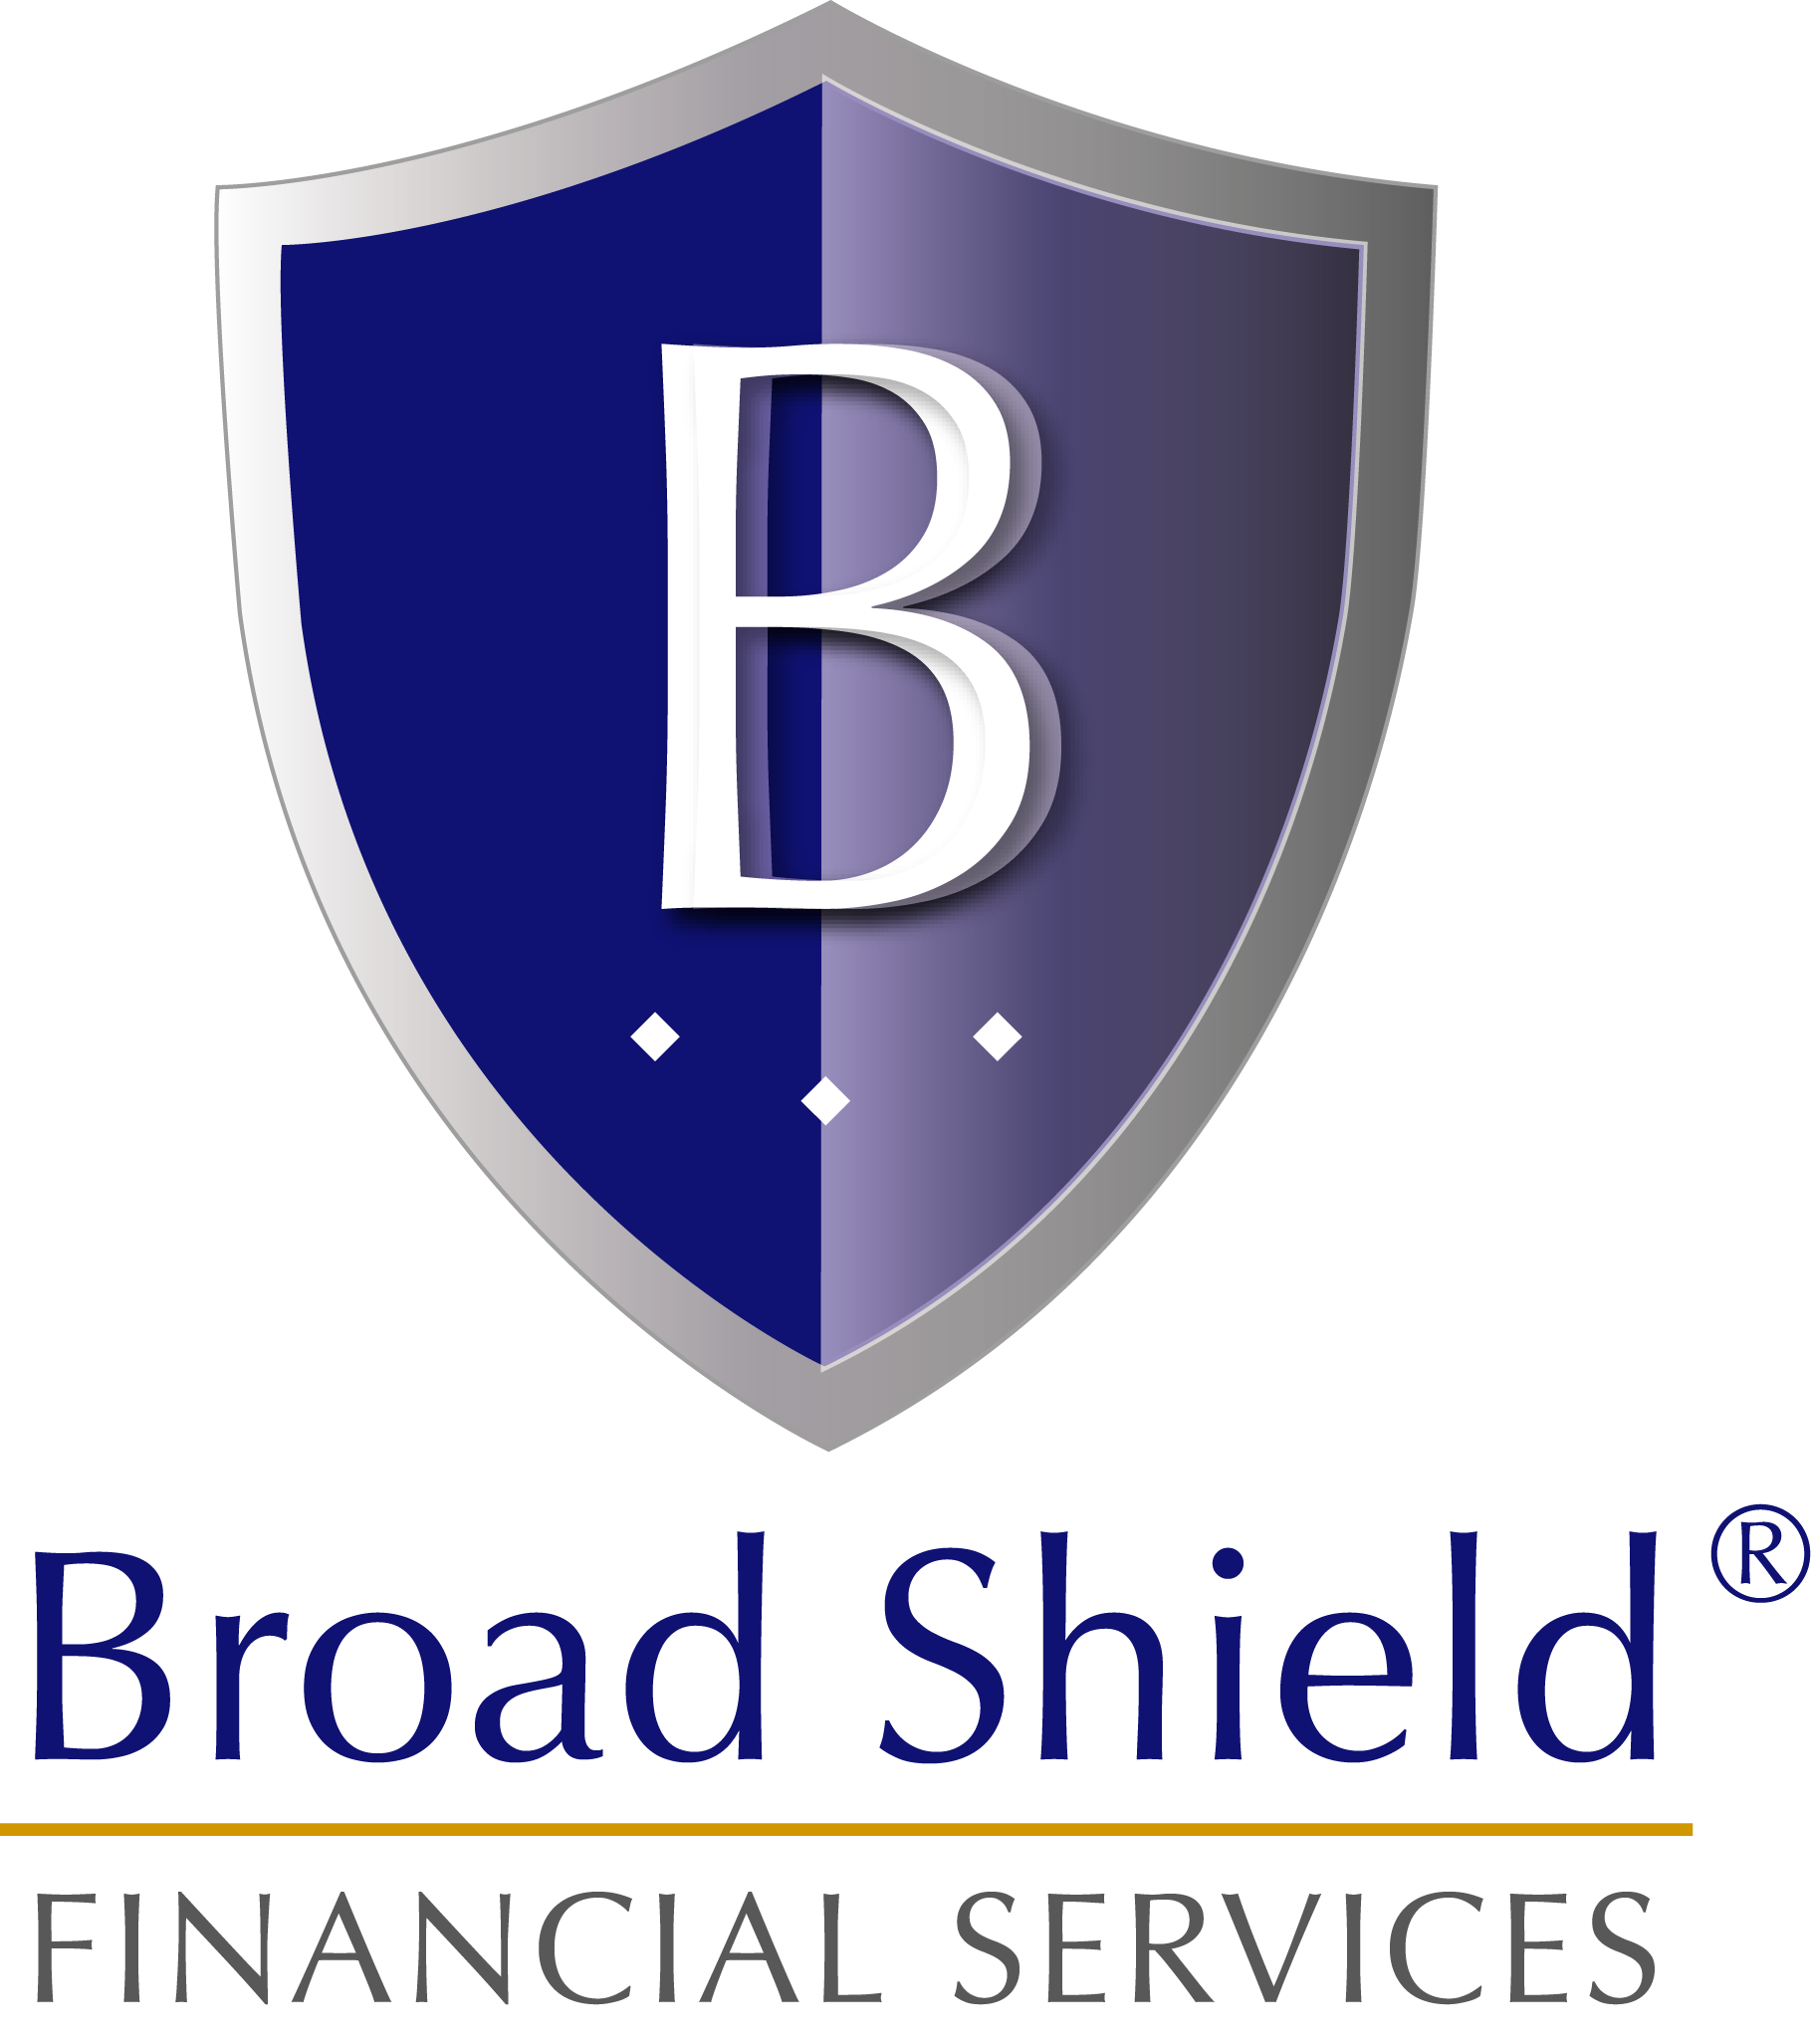 Broad Shield Financial Services Inc.